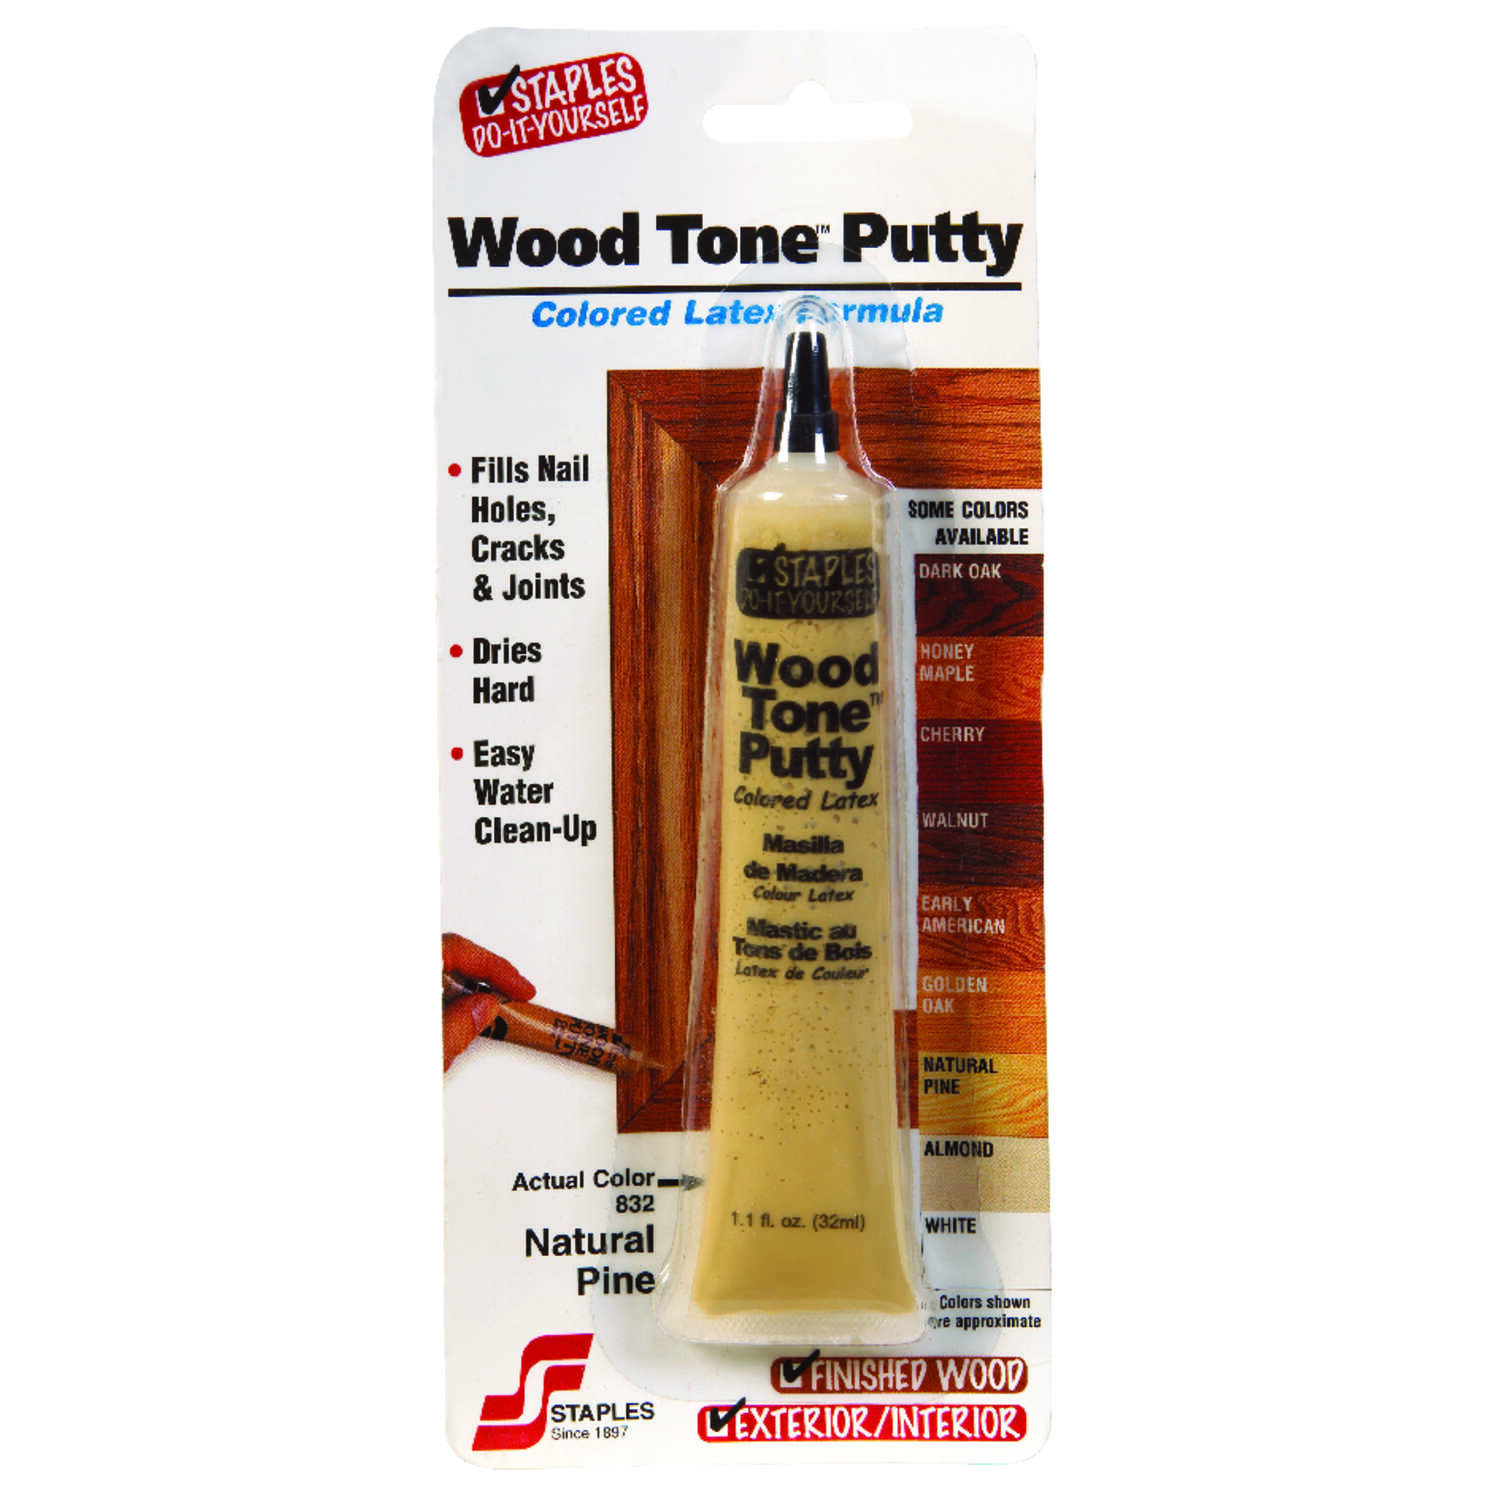 Staples  Wood Tone  Natural Pine / Butternut  Wood Putty  1.05 oz.